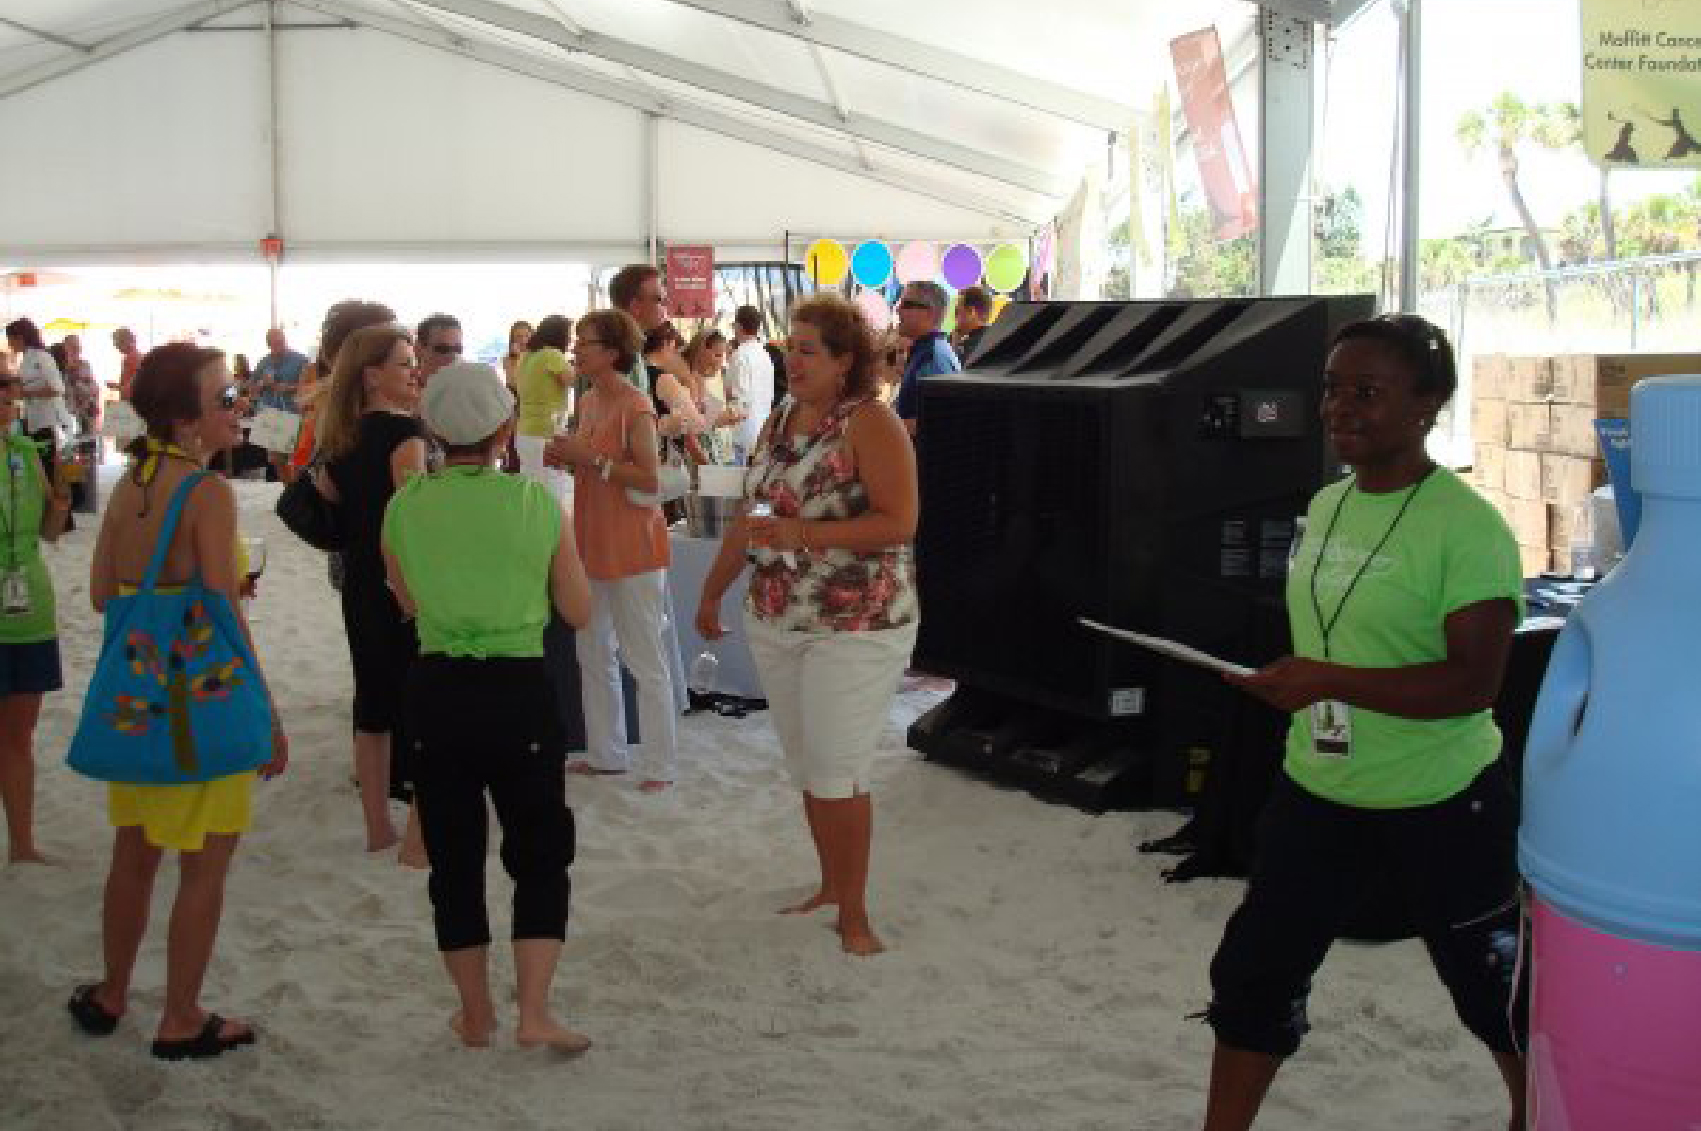 Port A Cool 36 Tent Event koeling